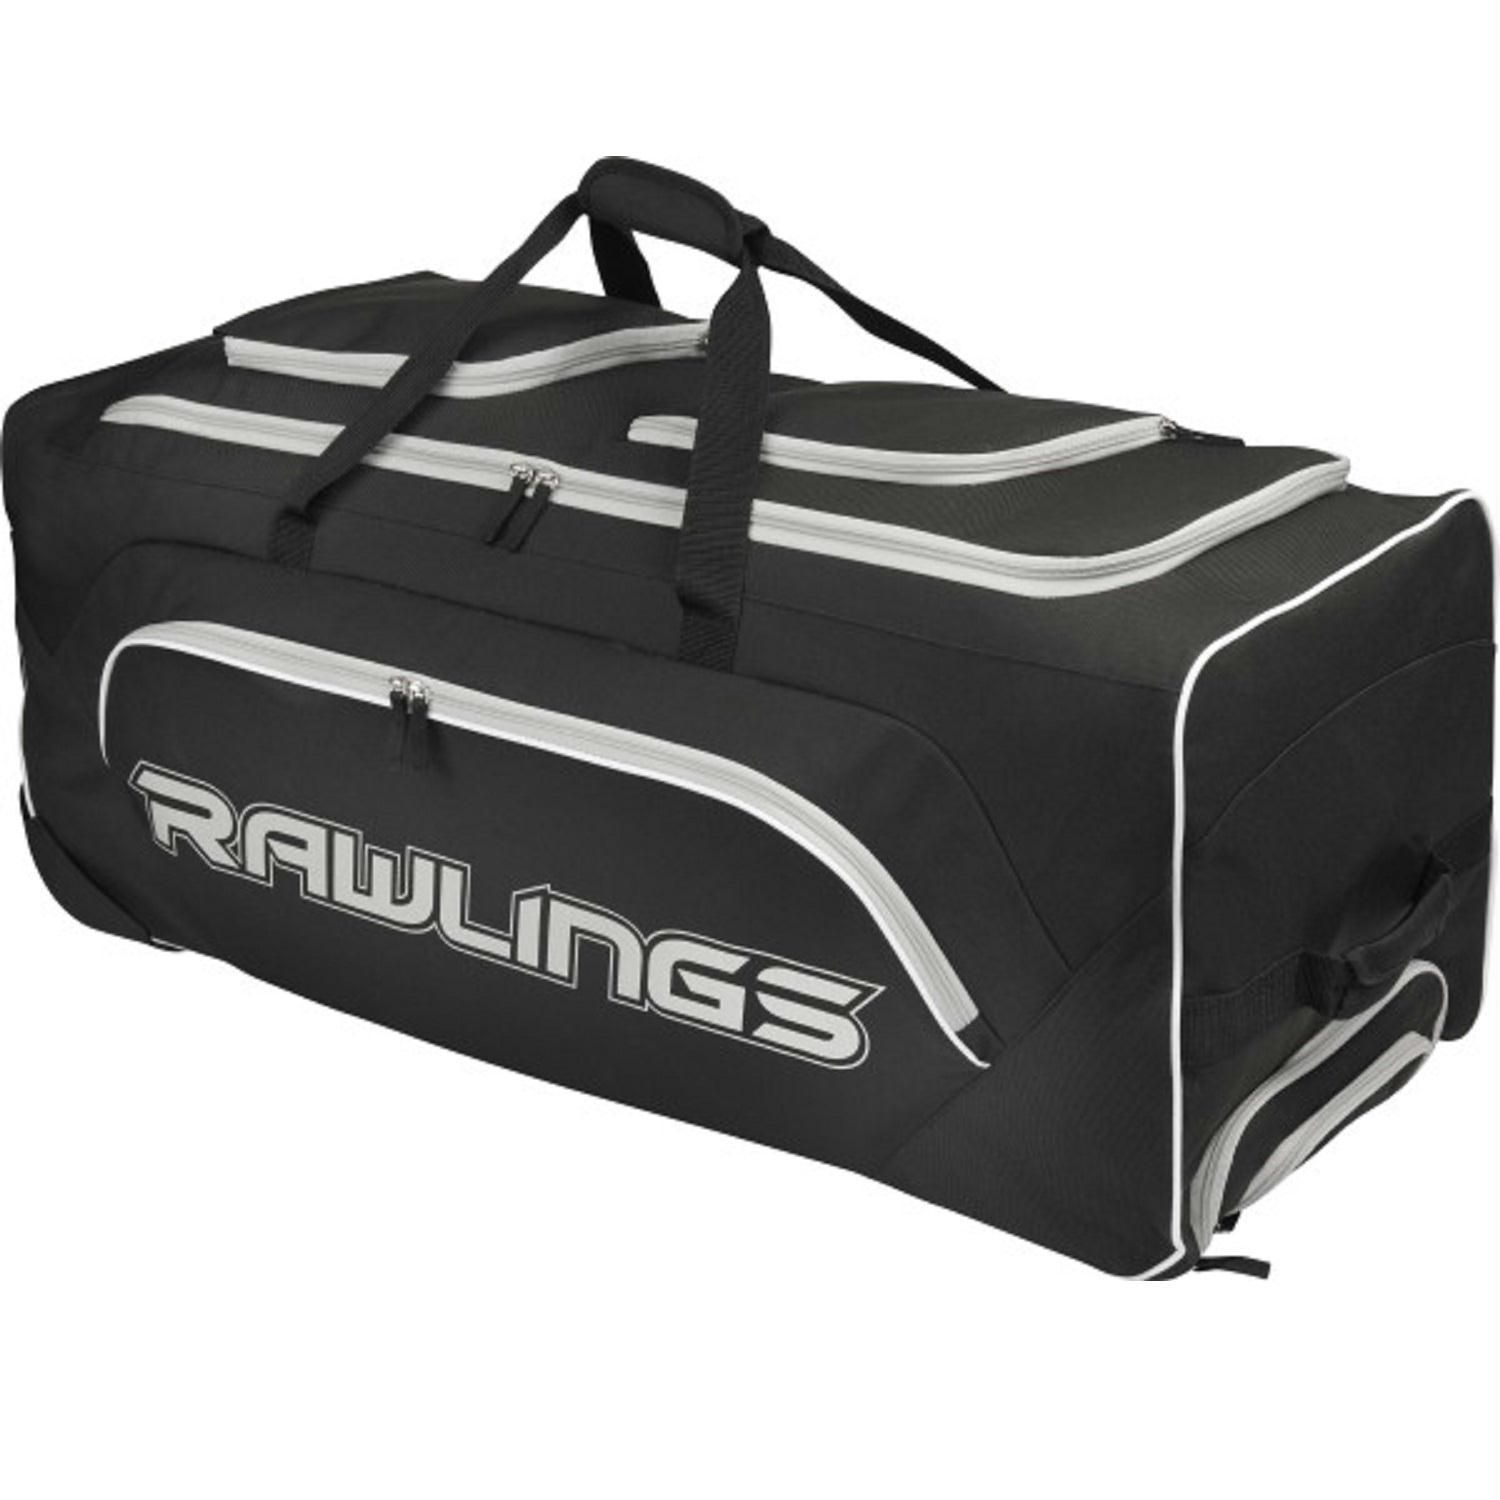 078aabcd1ad1 Rawlings Wheeled Catchers Bag - Black